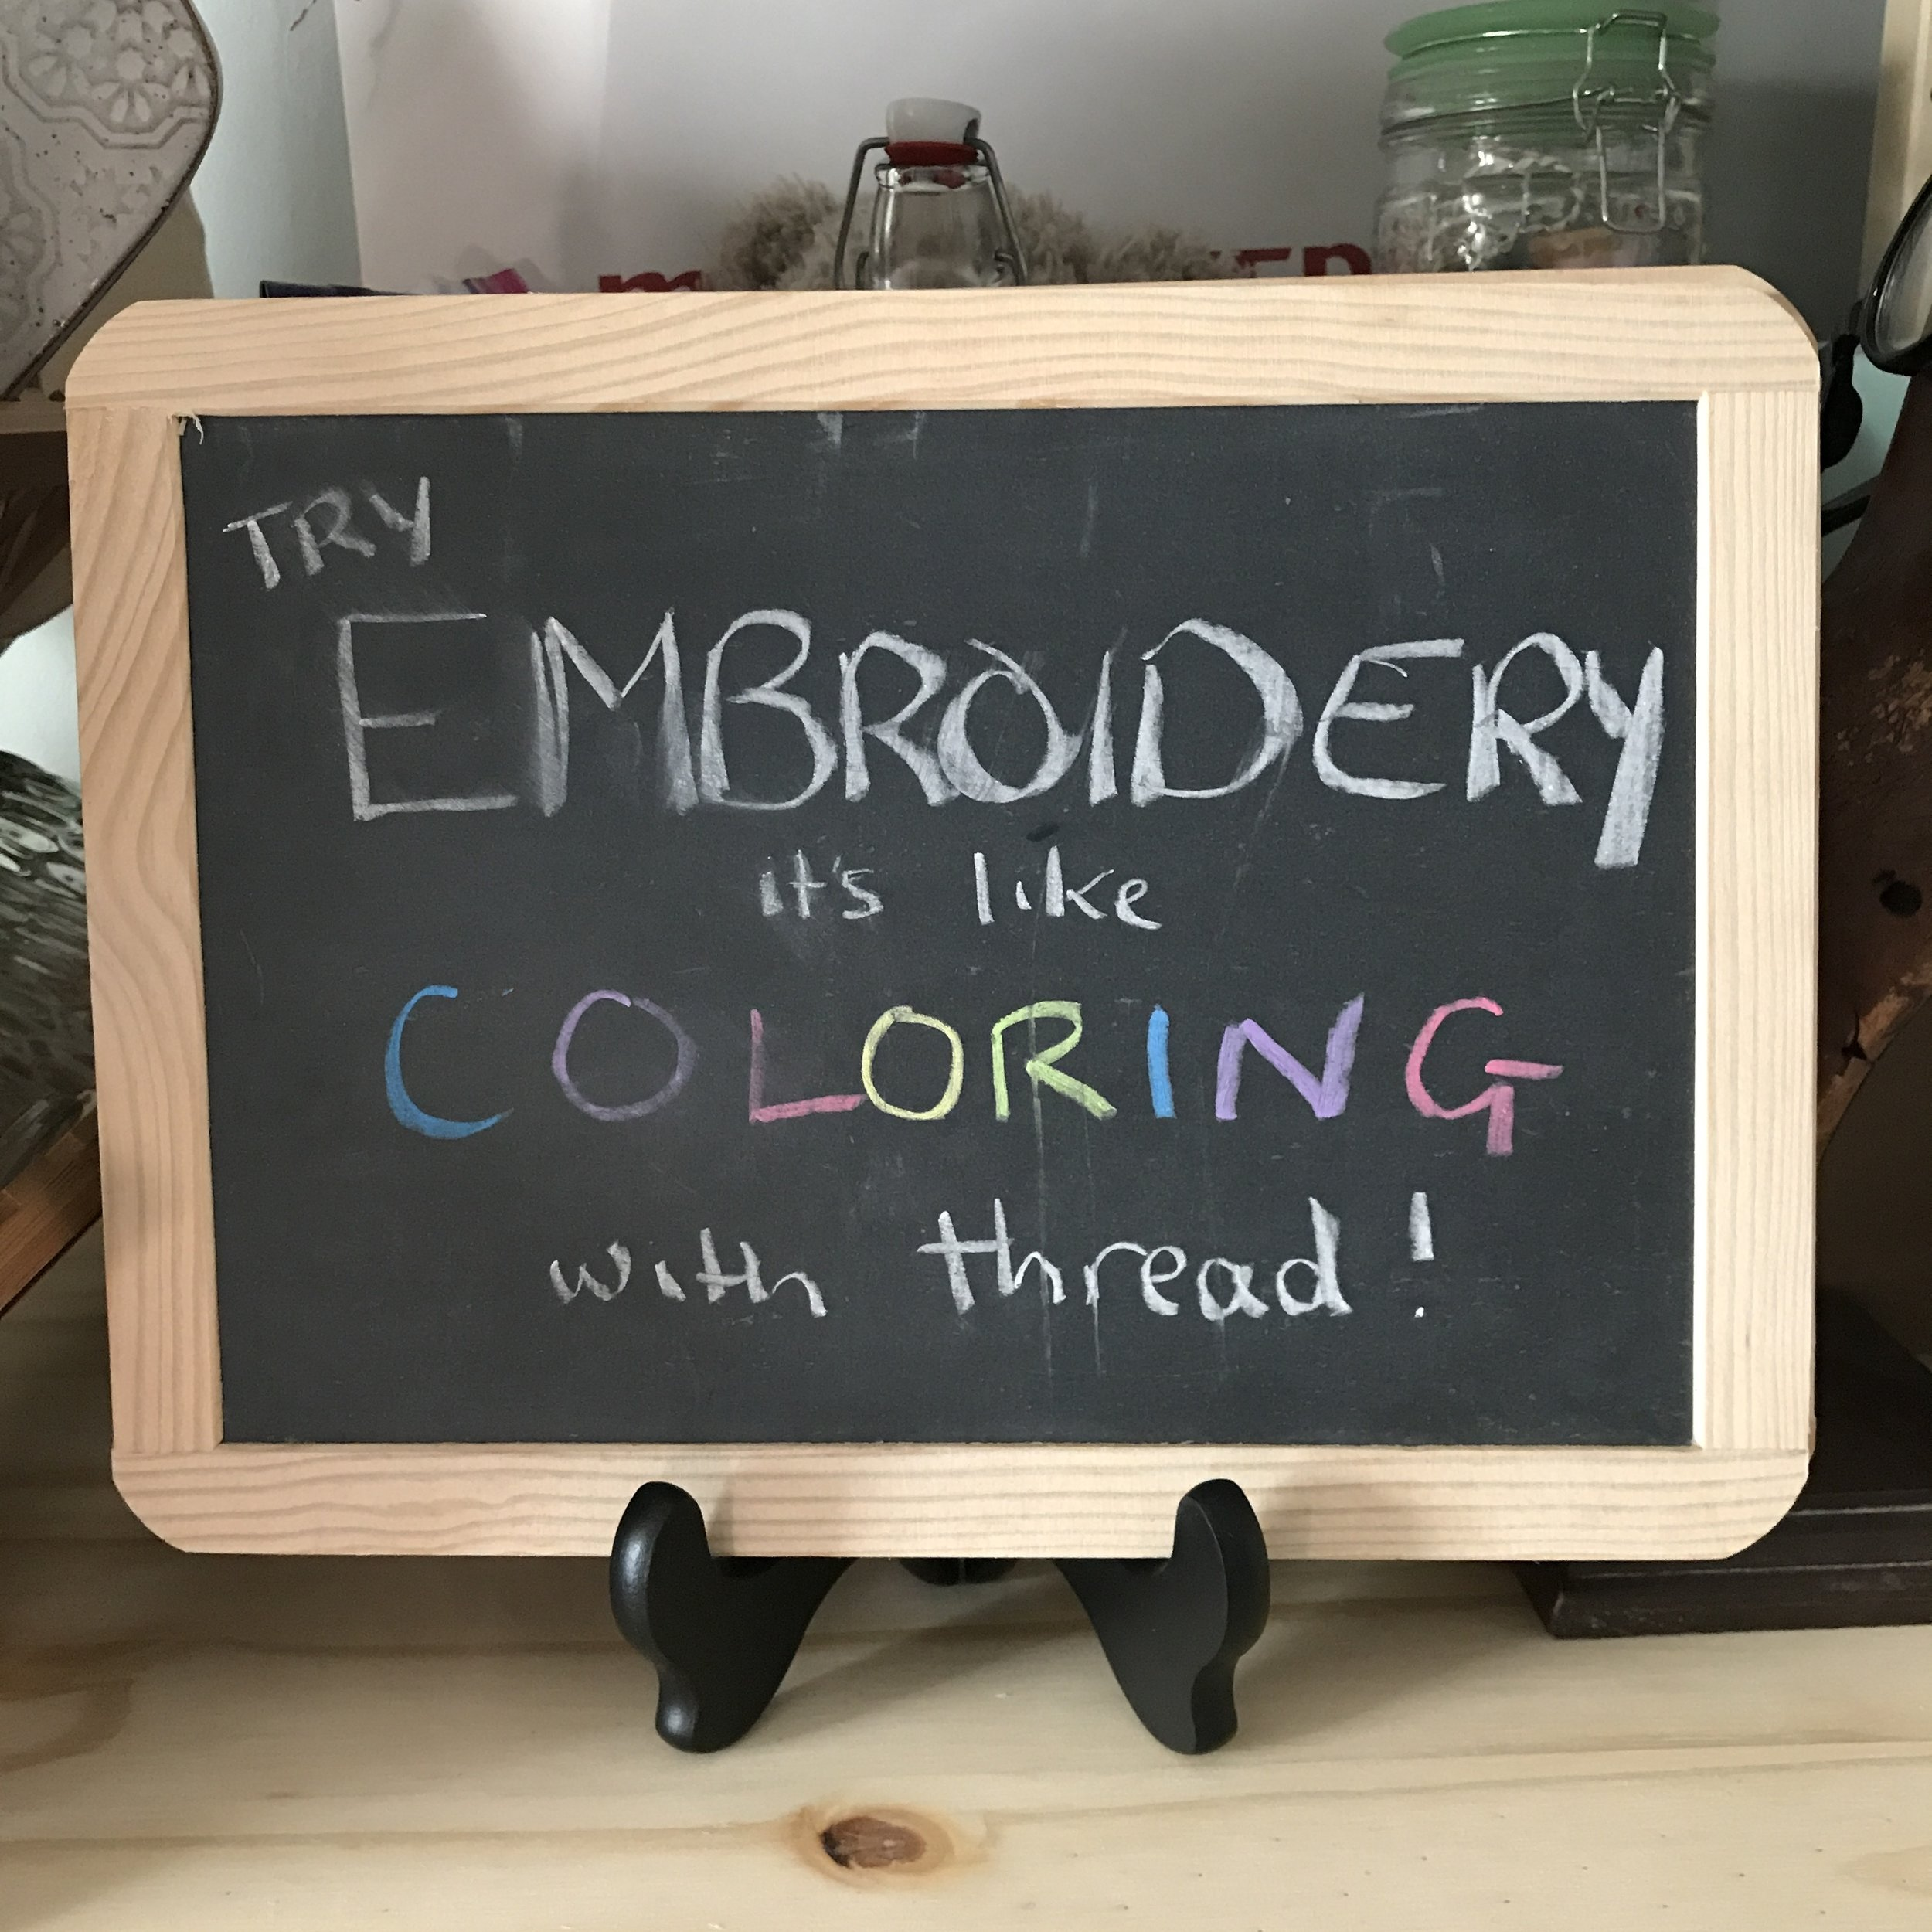 Try Embroidery